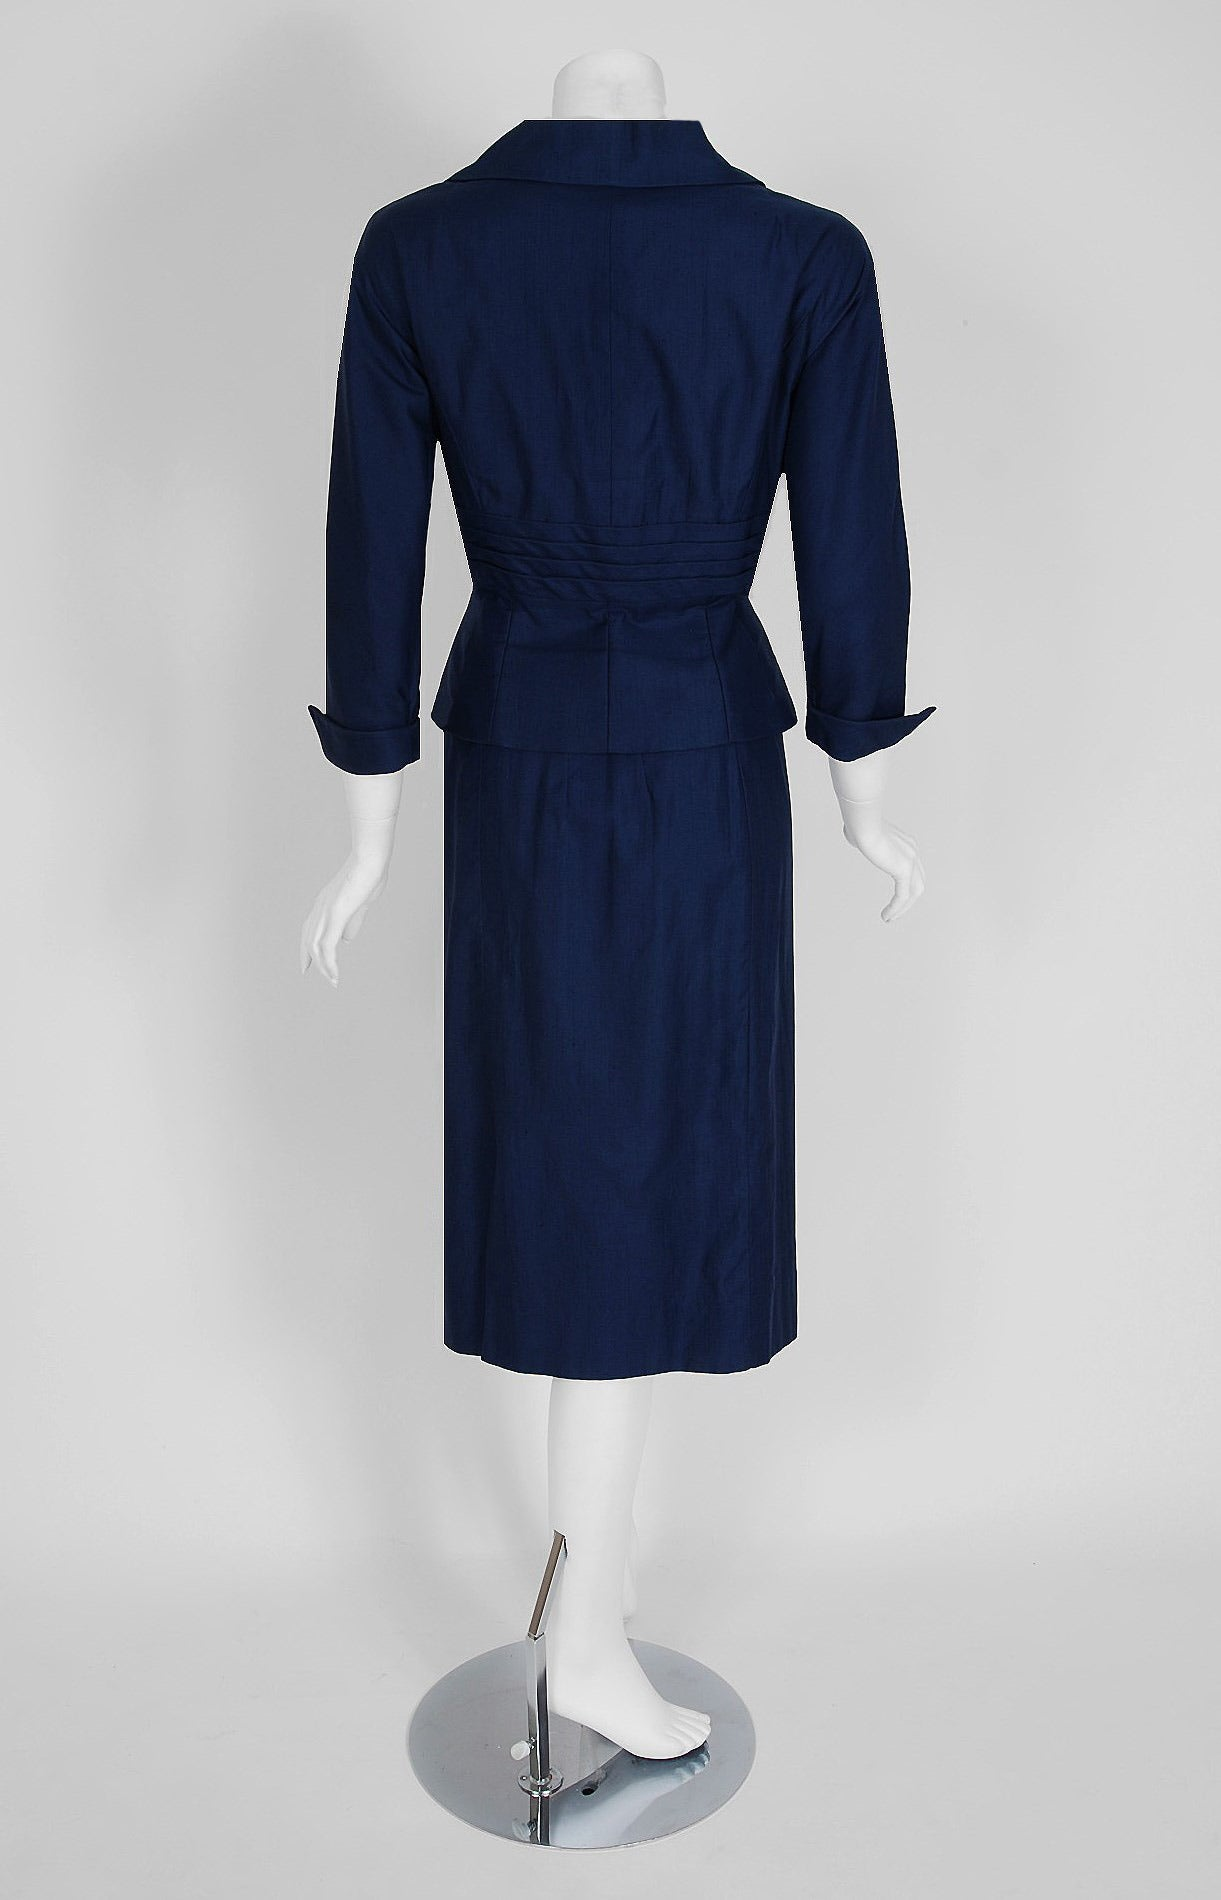 1940 S Don Loper Navy Blue Silk Tailored Hourglass Noir